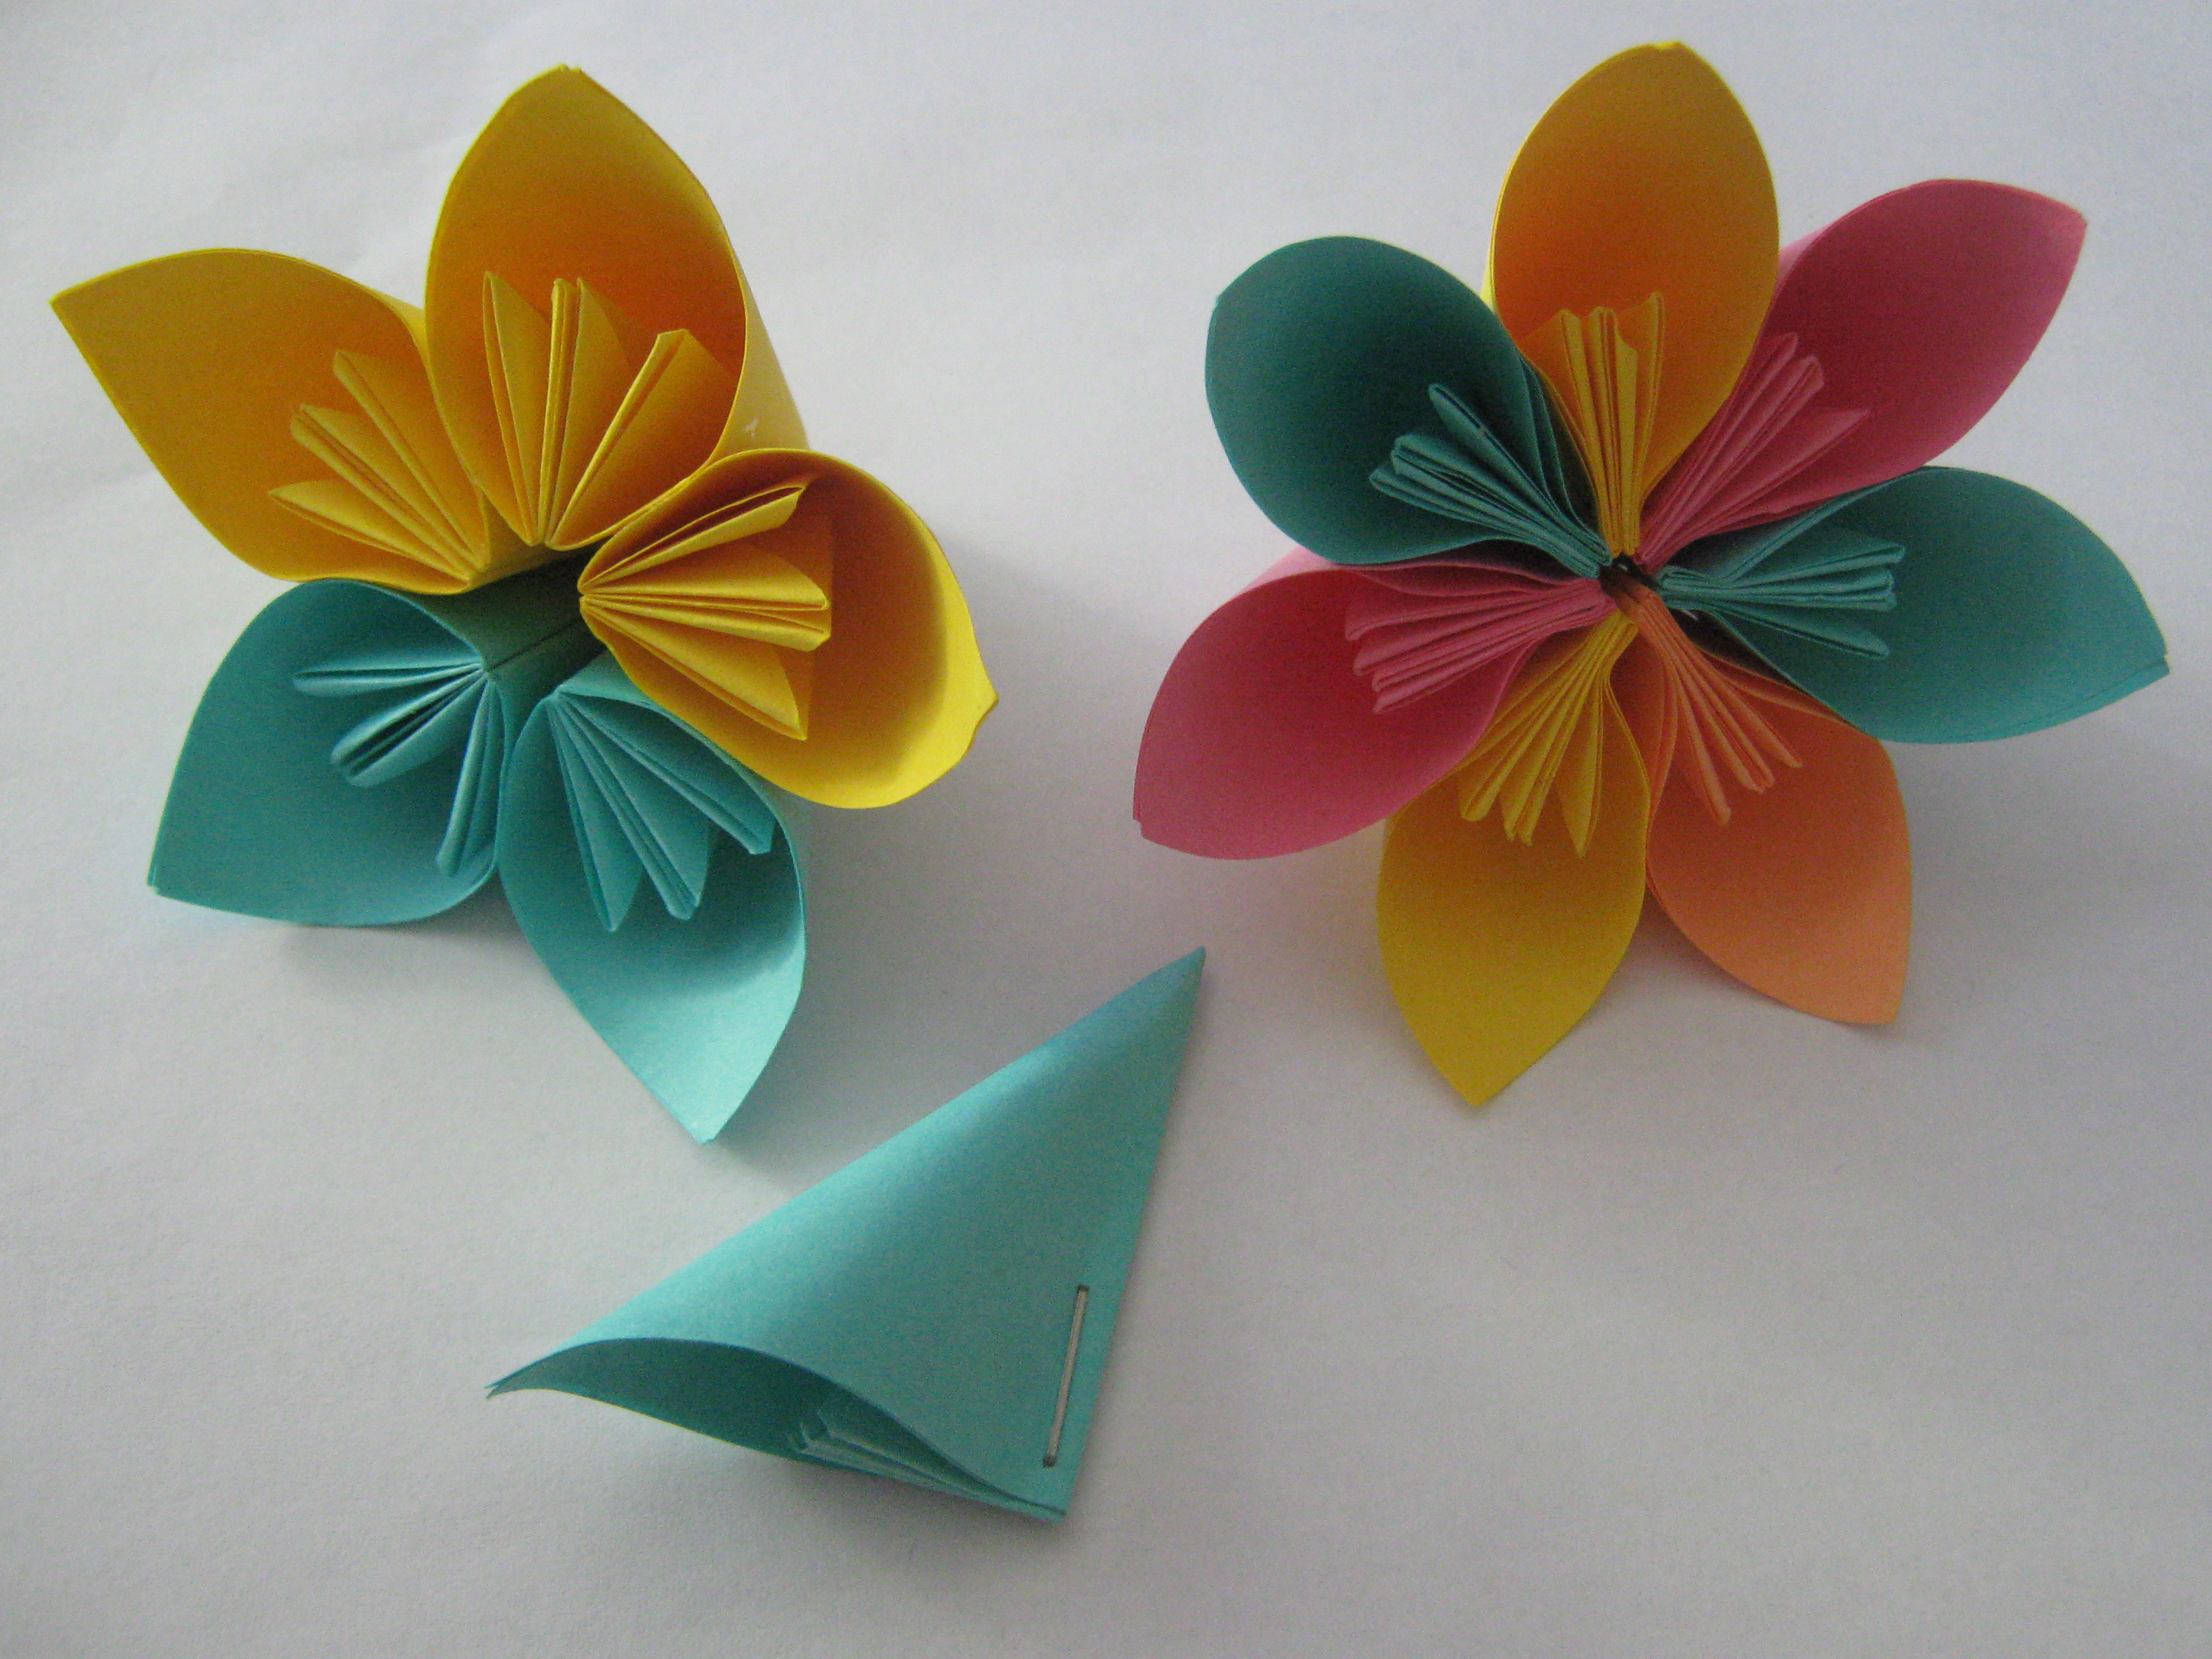 How To Make Handmade Flowers From Paper Tutorial Origami Flowers Learn 2 Origami Origami